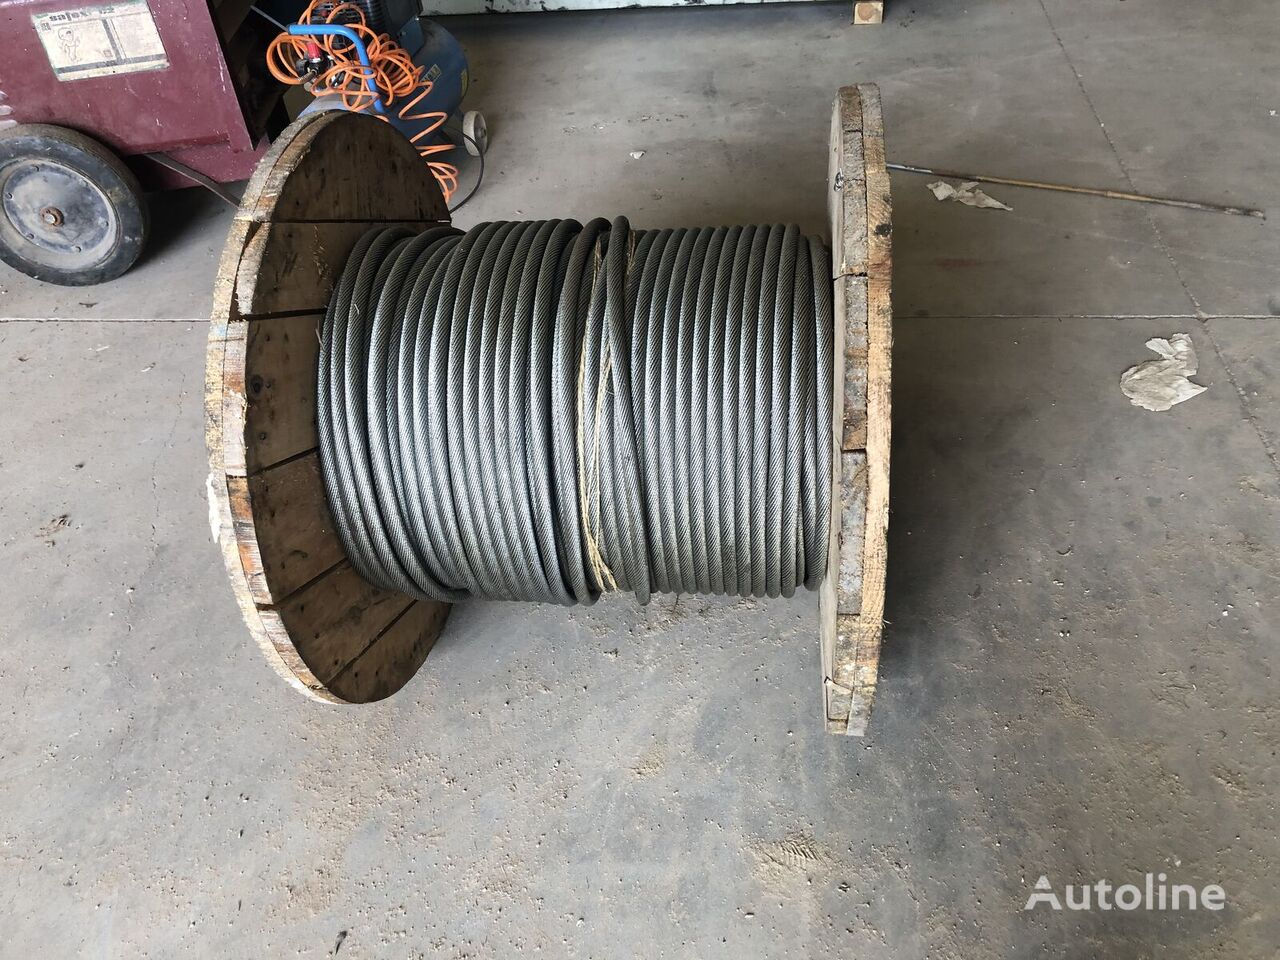 CABLE DE ELEVACION 150 metros X 17 mm, antigiratorio/inoxidable LIEBHERR 150x17 other operating parts for LIEBHERR GROVE, LIEBHERR, DEMAG, FAUN mobile crane